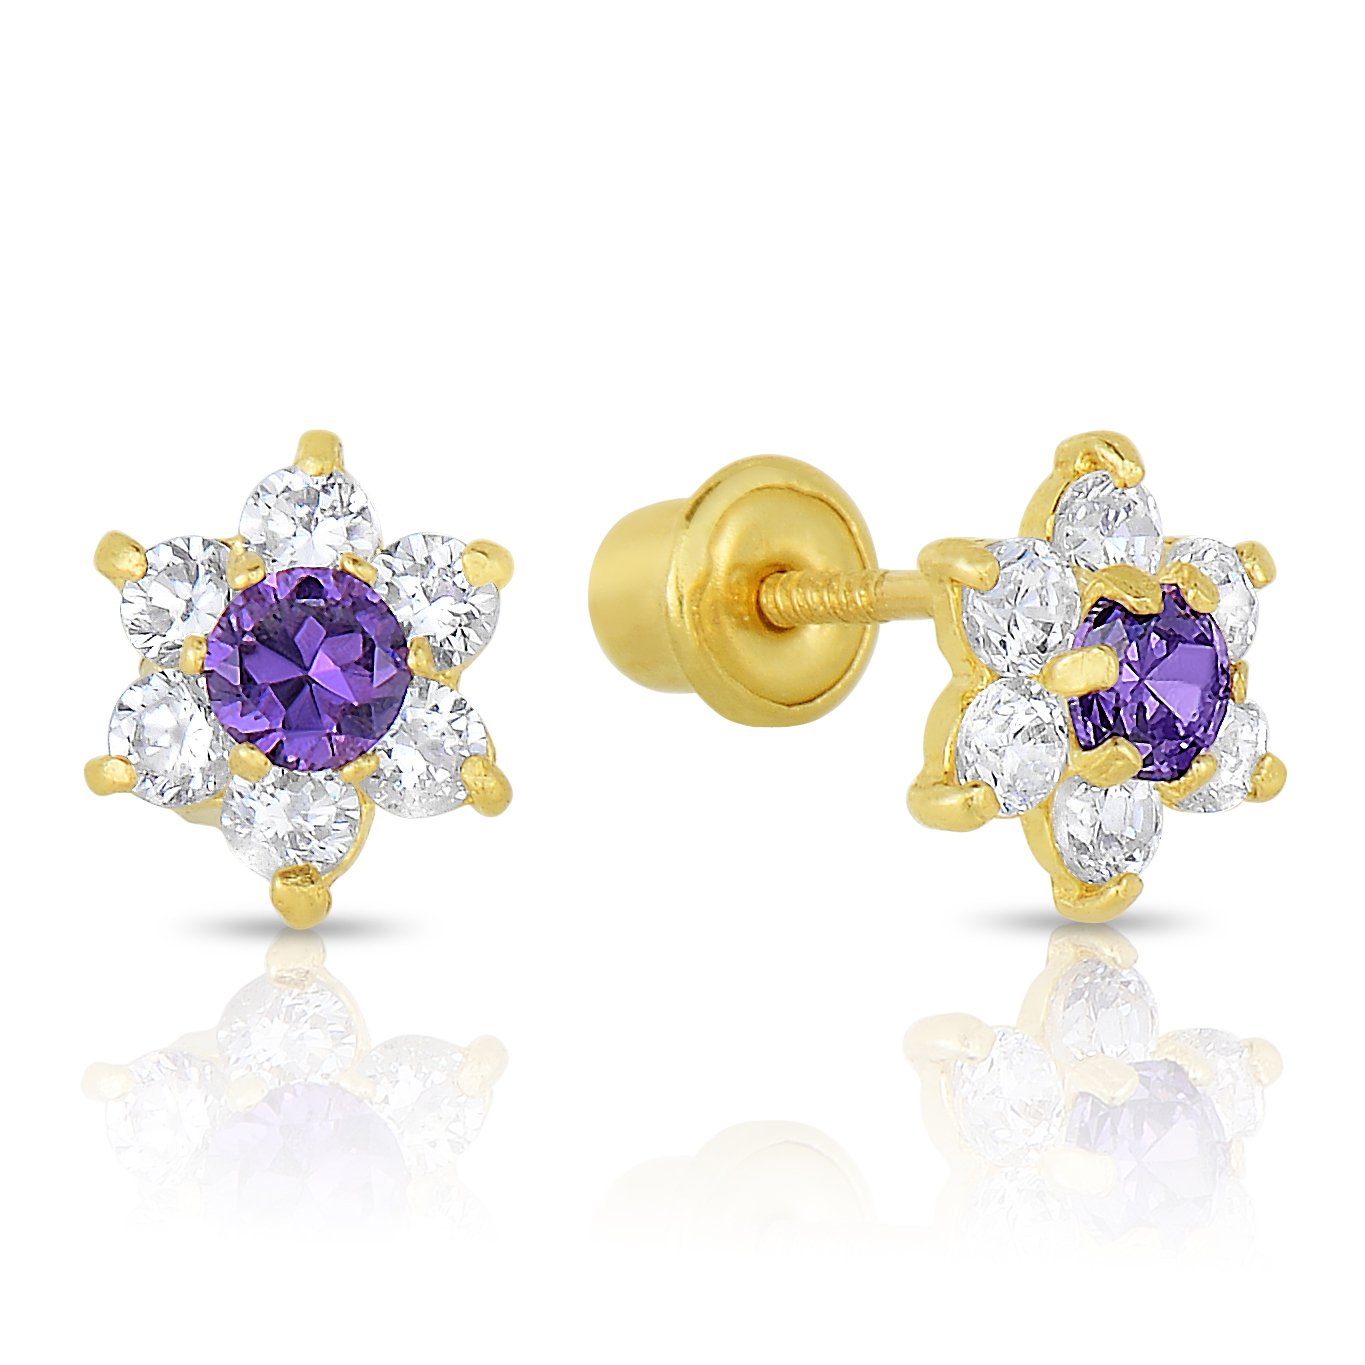 Girls 14k Gold Small Flower Stud Earrings with Cubic Zirconia and Screw Backings (February)